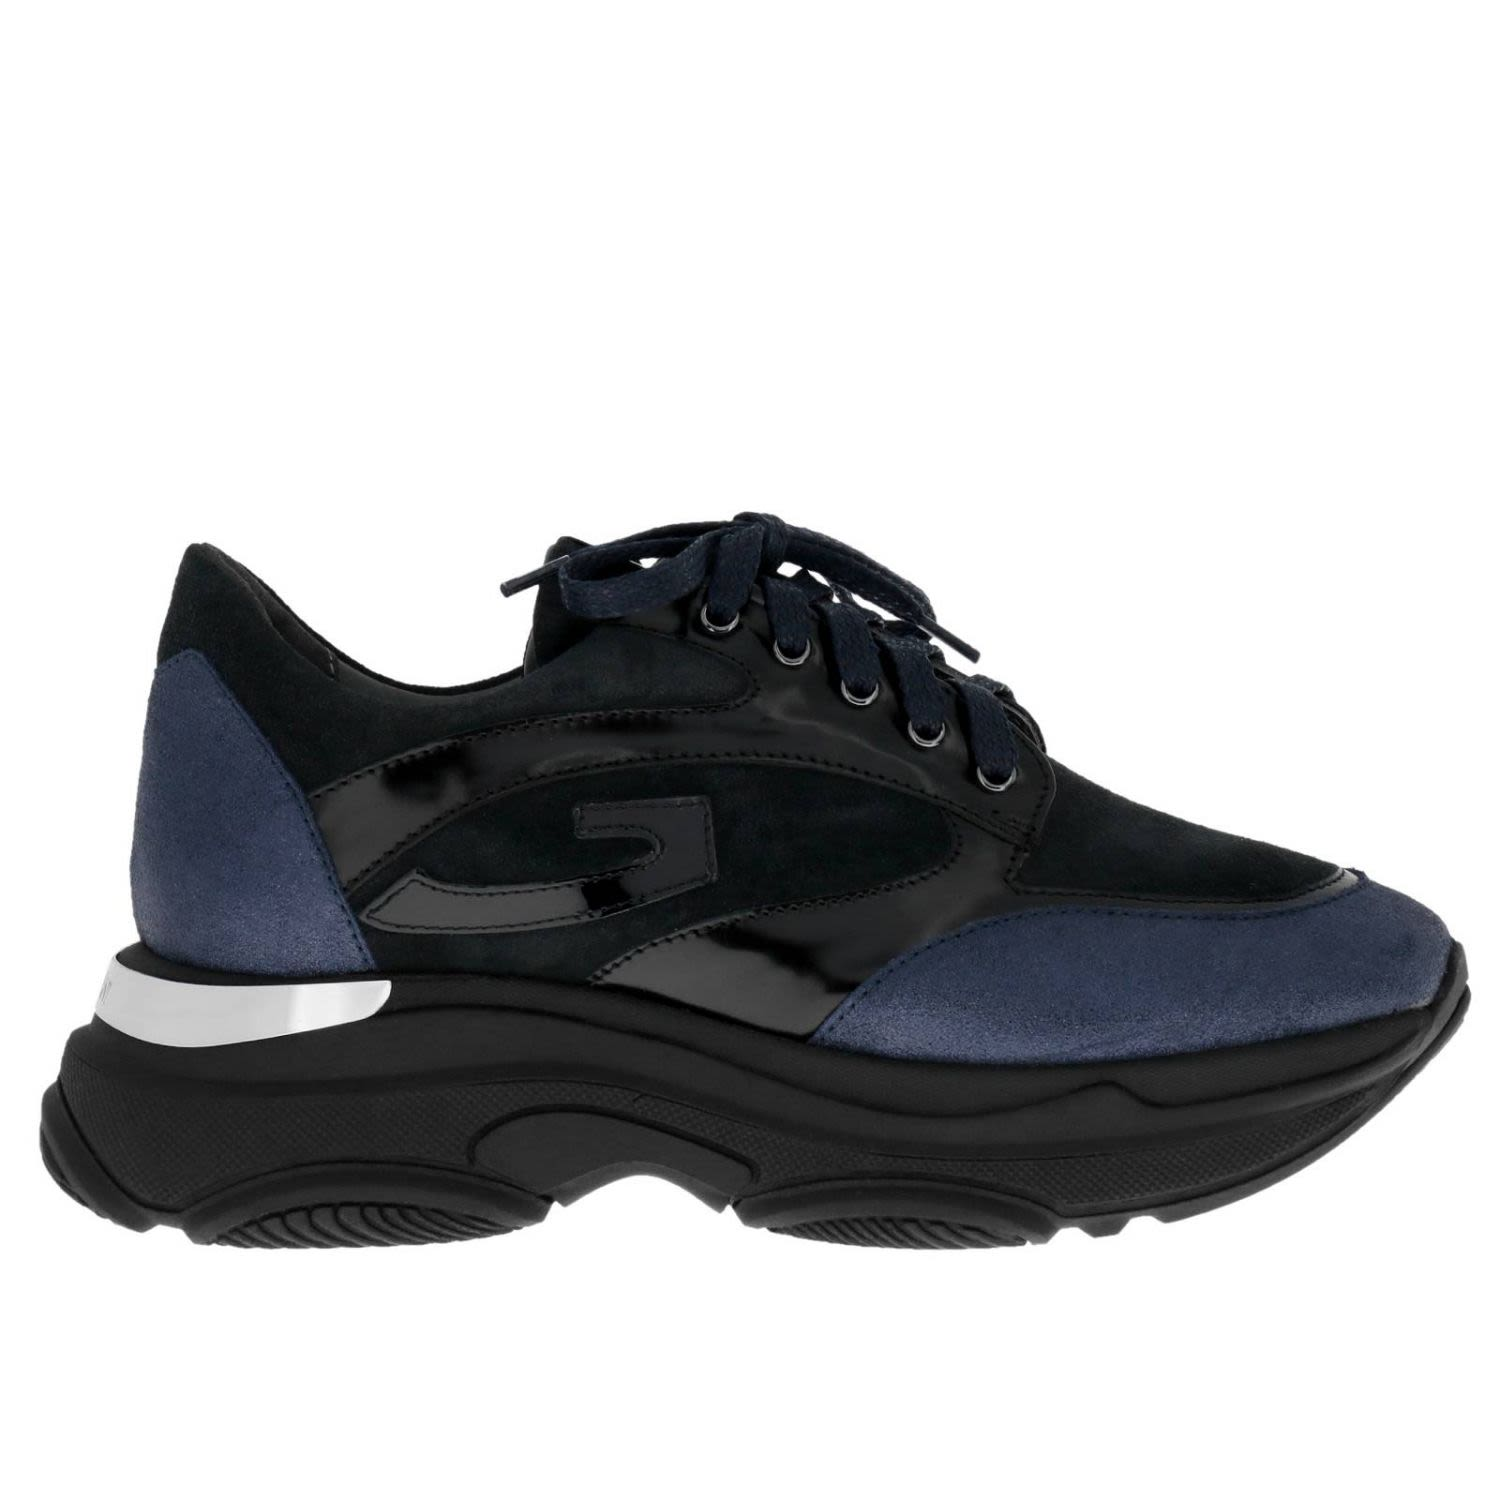 ALBERTO GUARDIANI Guardiani Sneakers Shoes Women Guardiani in Blue